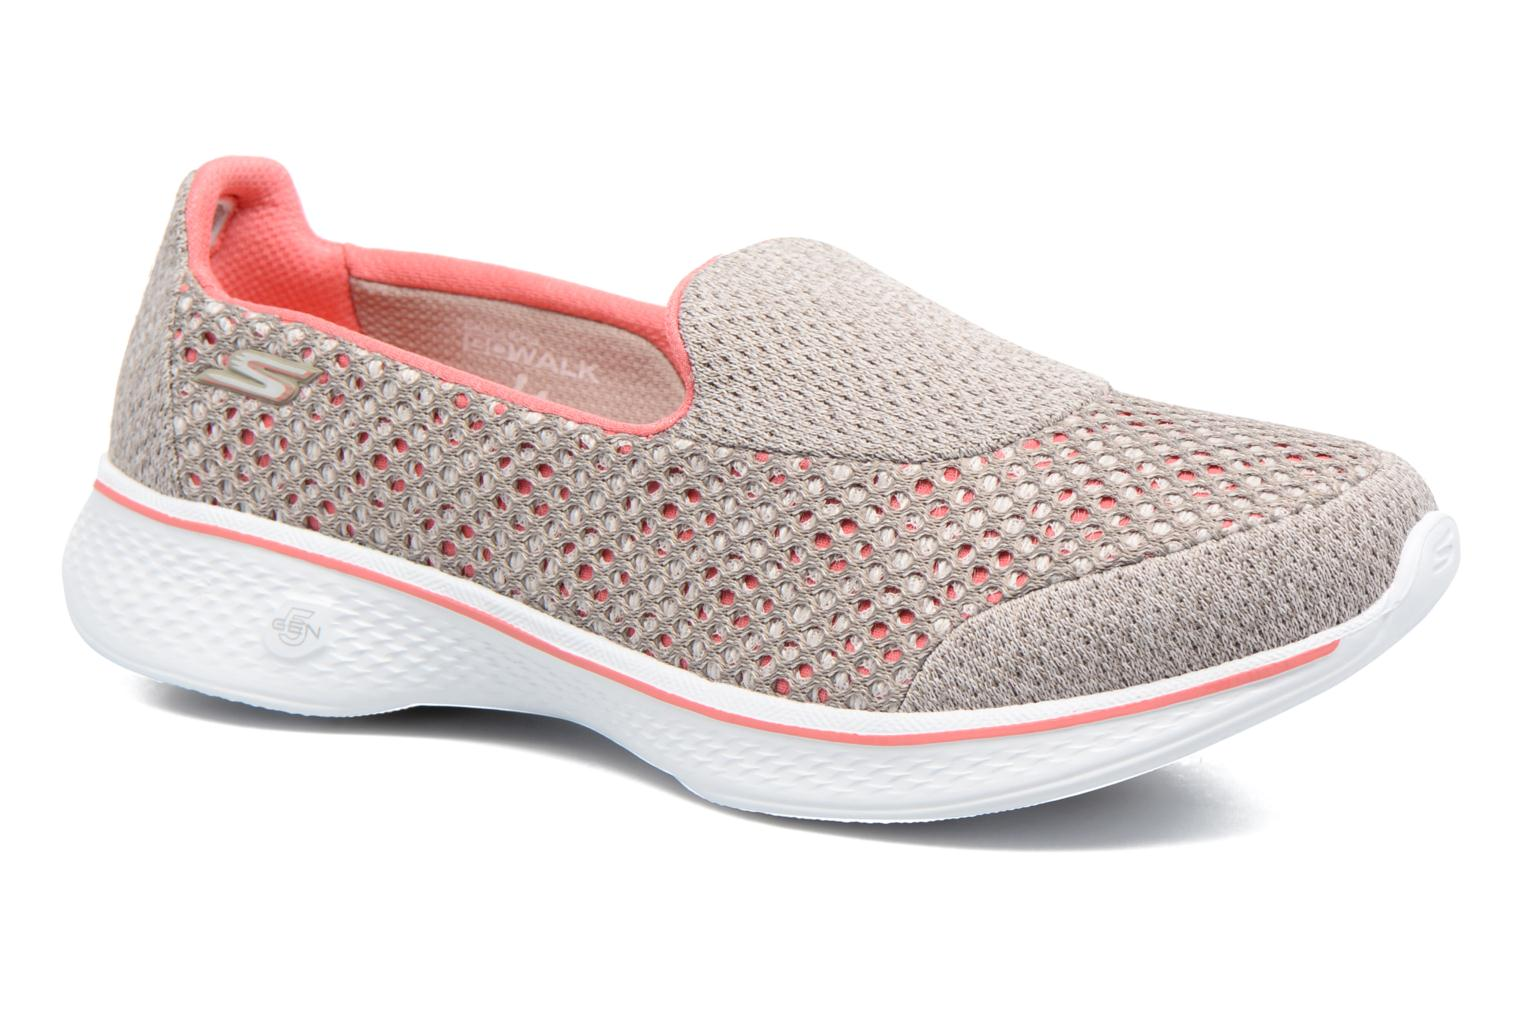 Chaussures Skechers roses Casual femme PxivKd8ch